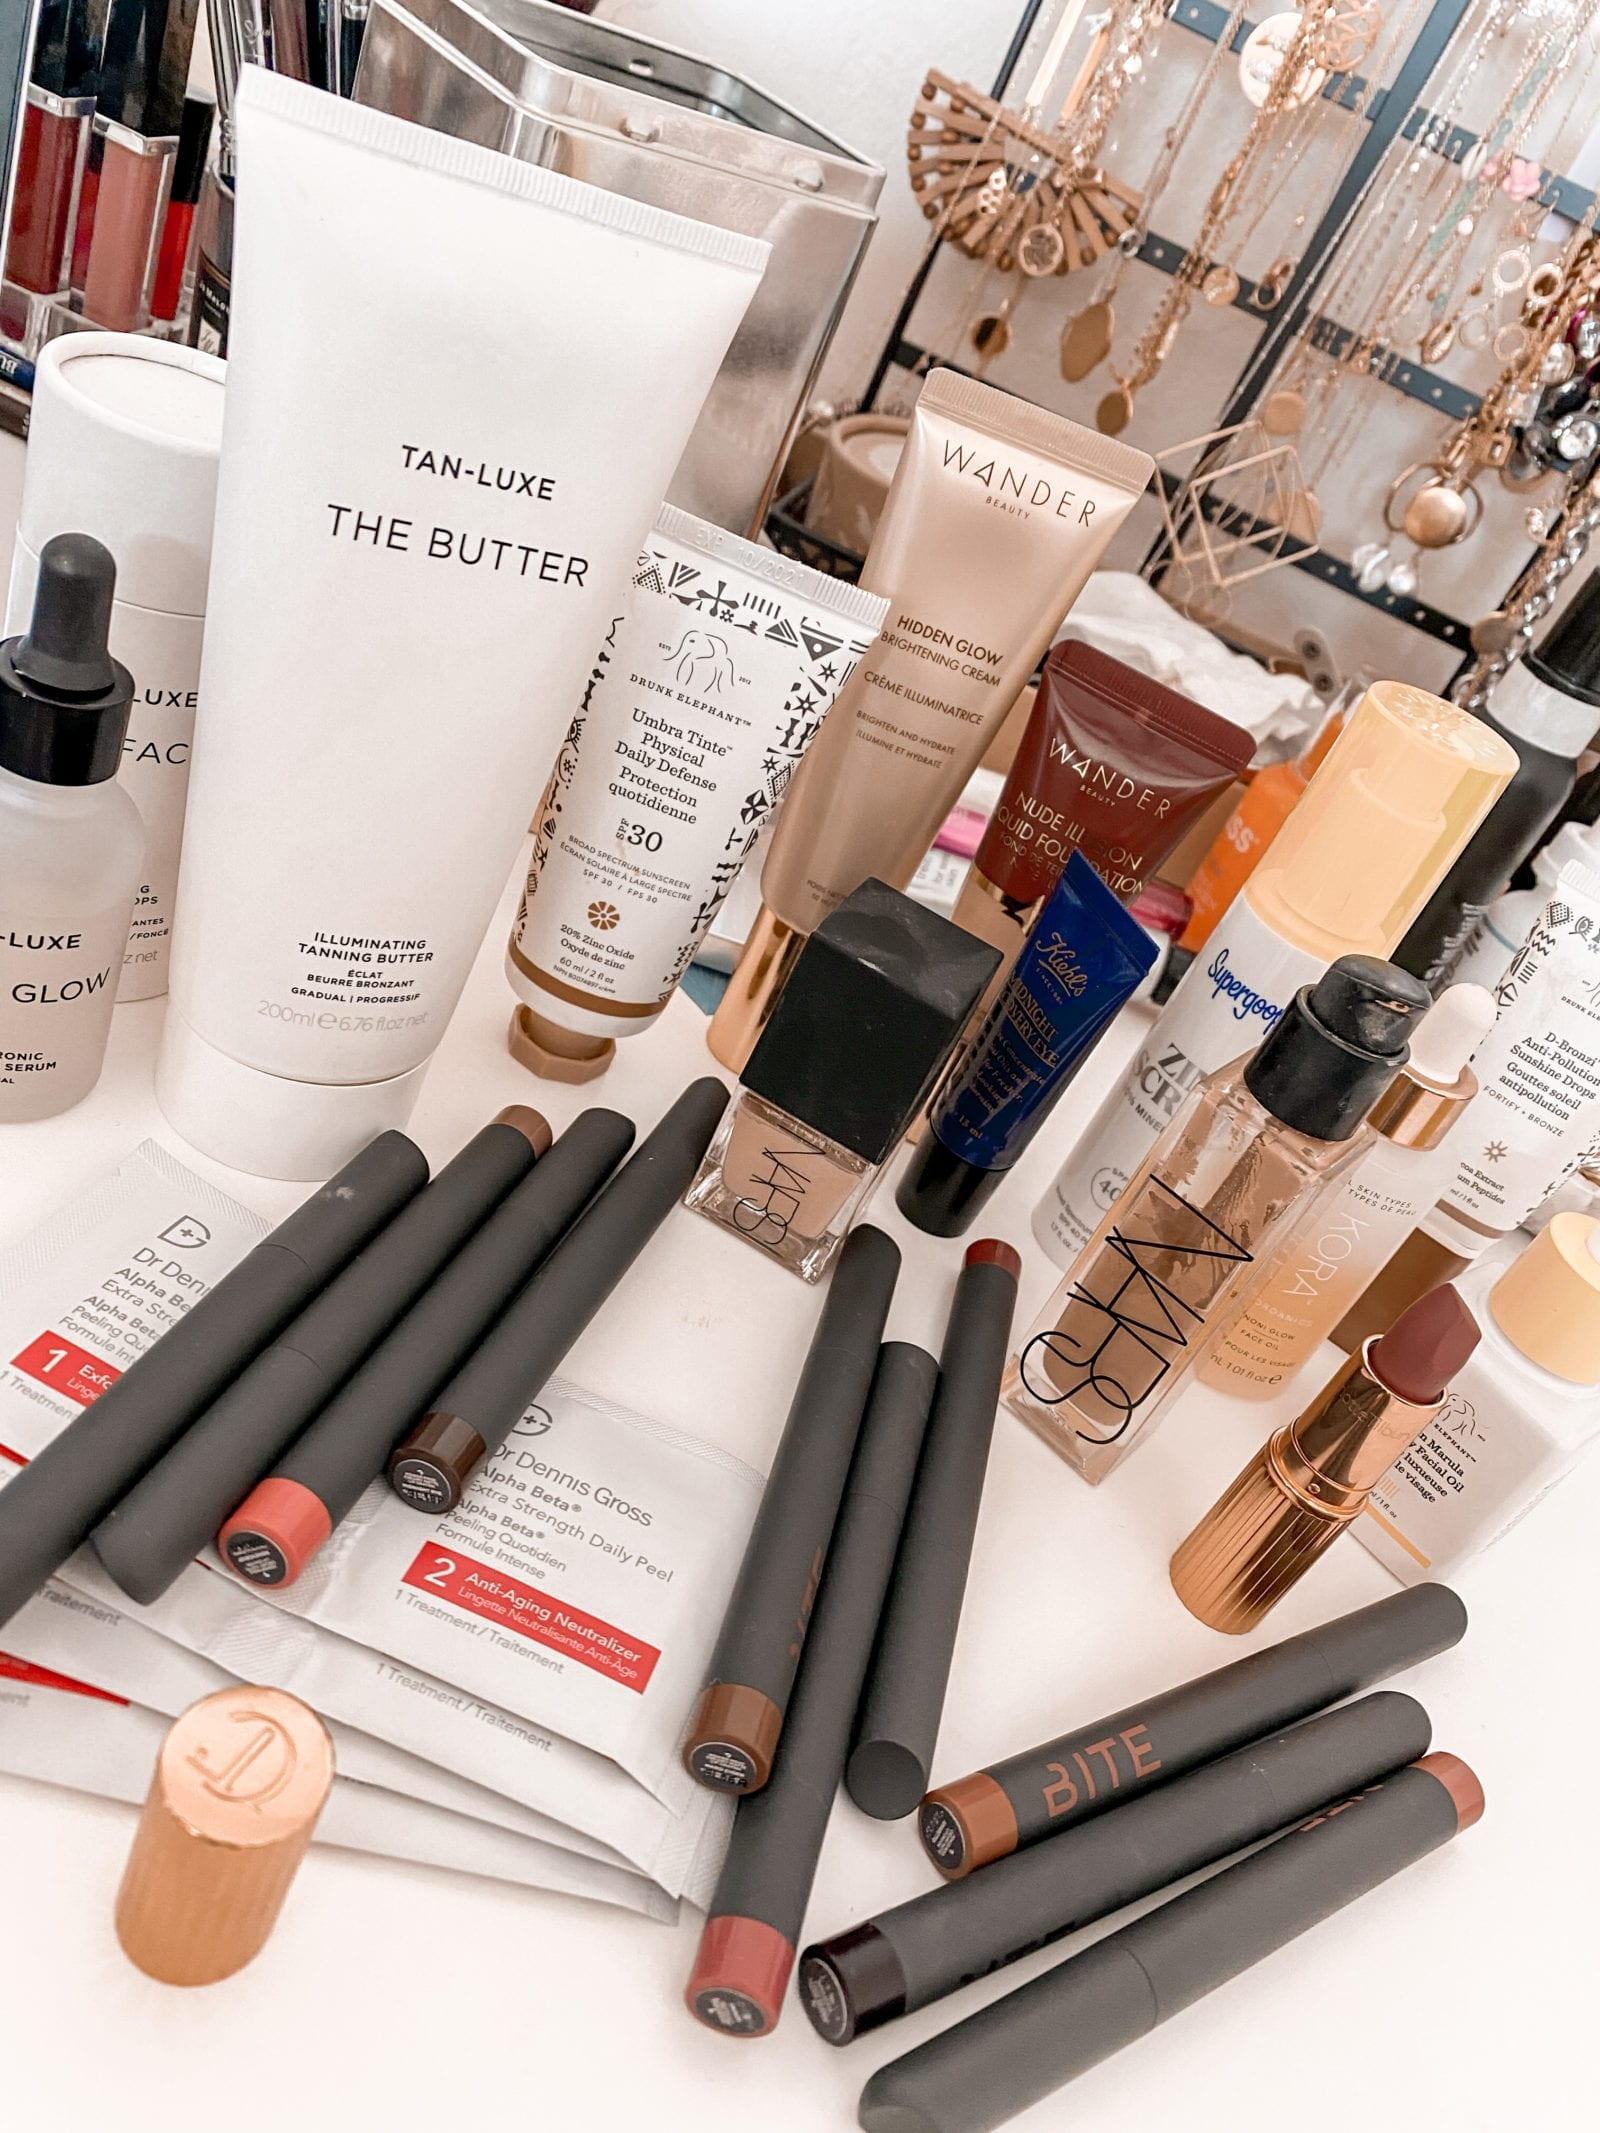 This is a flat lay of Adaleta Avdic's favorite items at Sephora, which should be shopped during the Sephora Spring Sale.